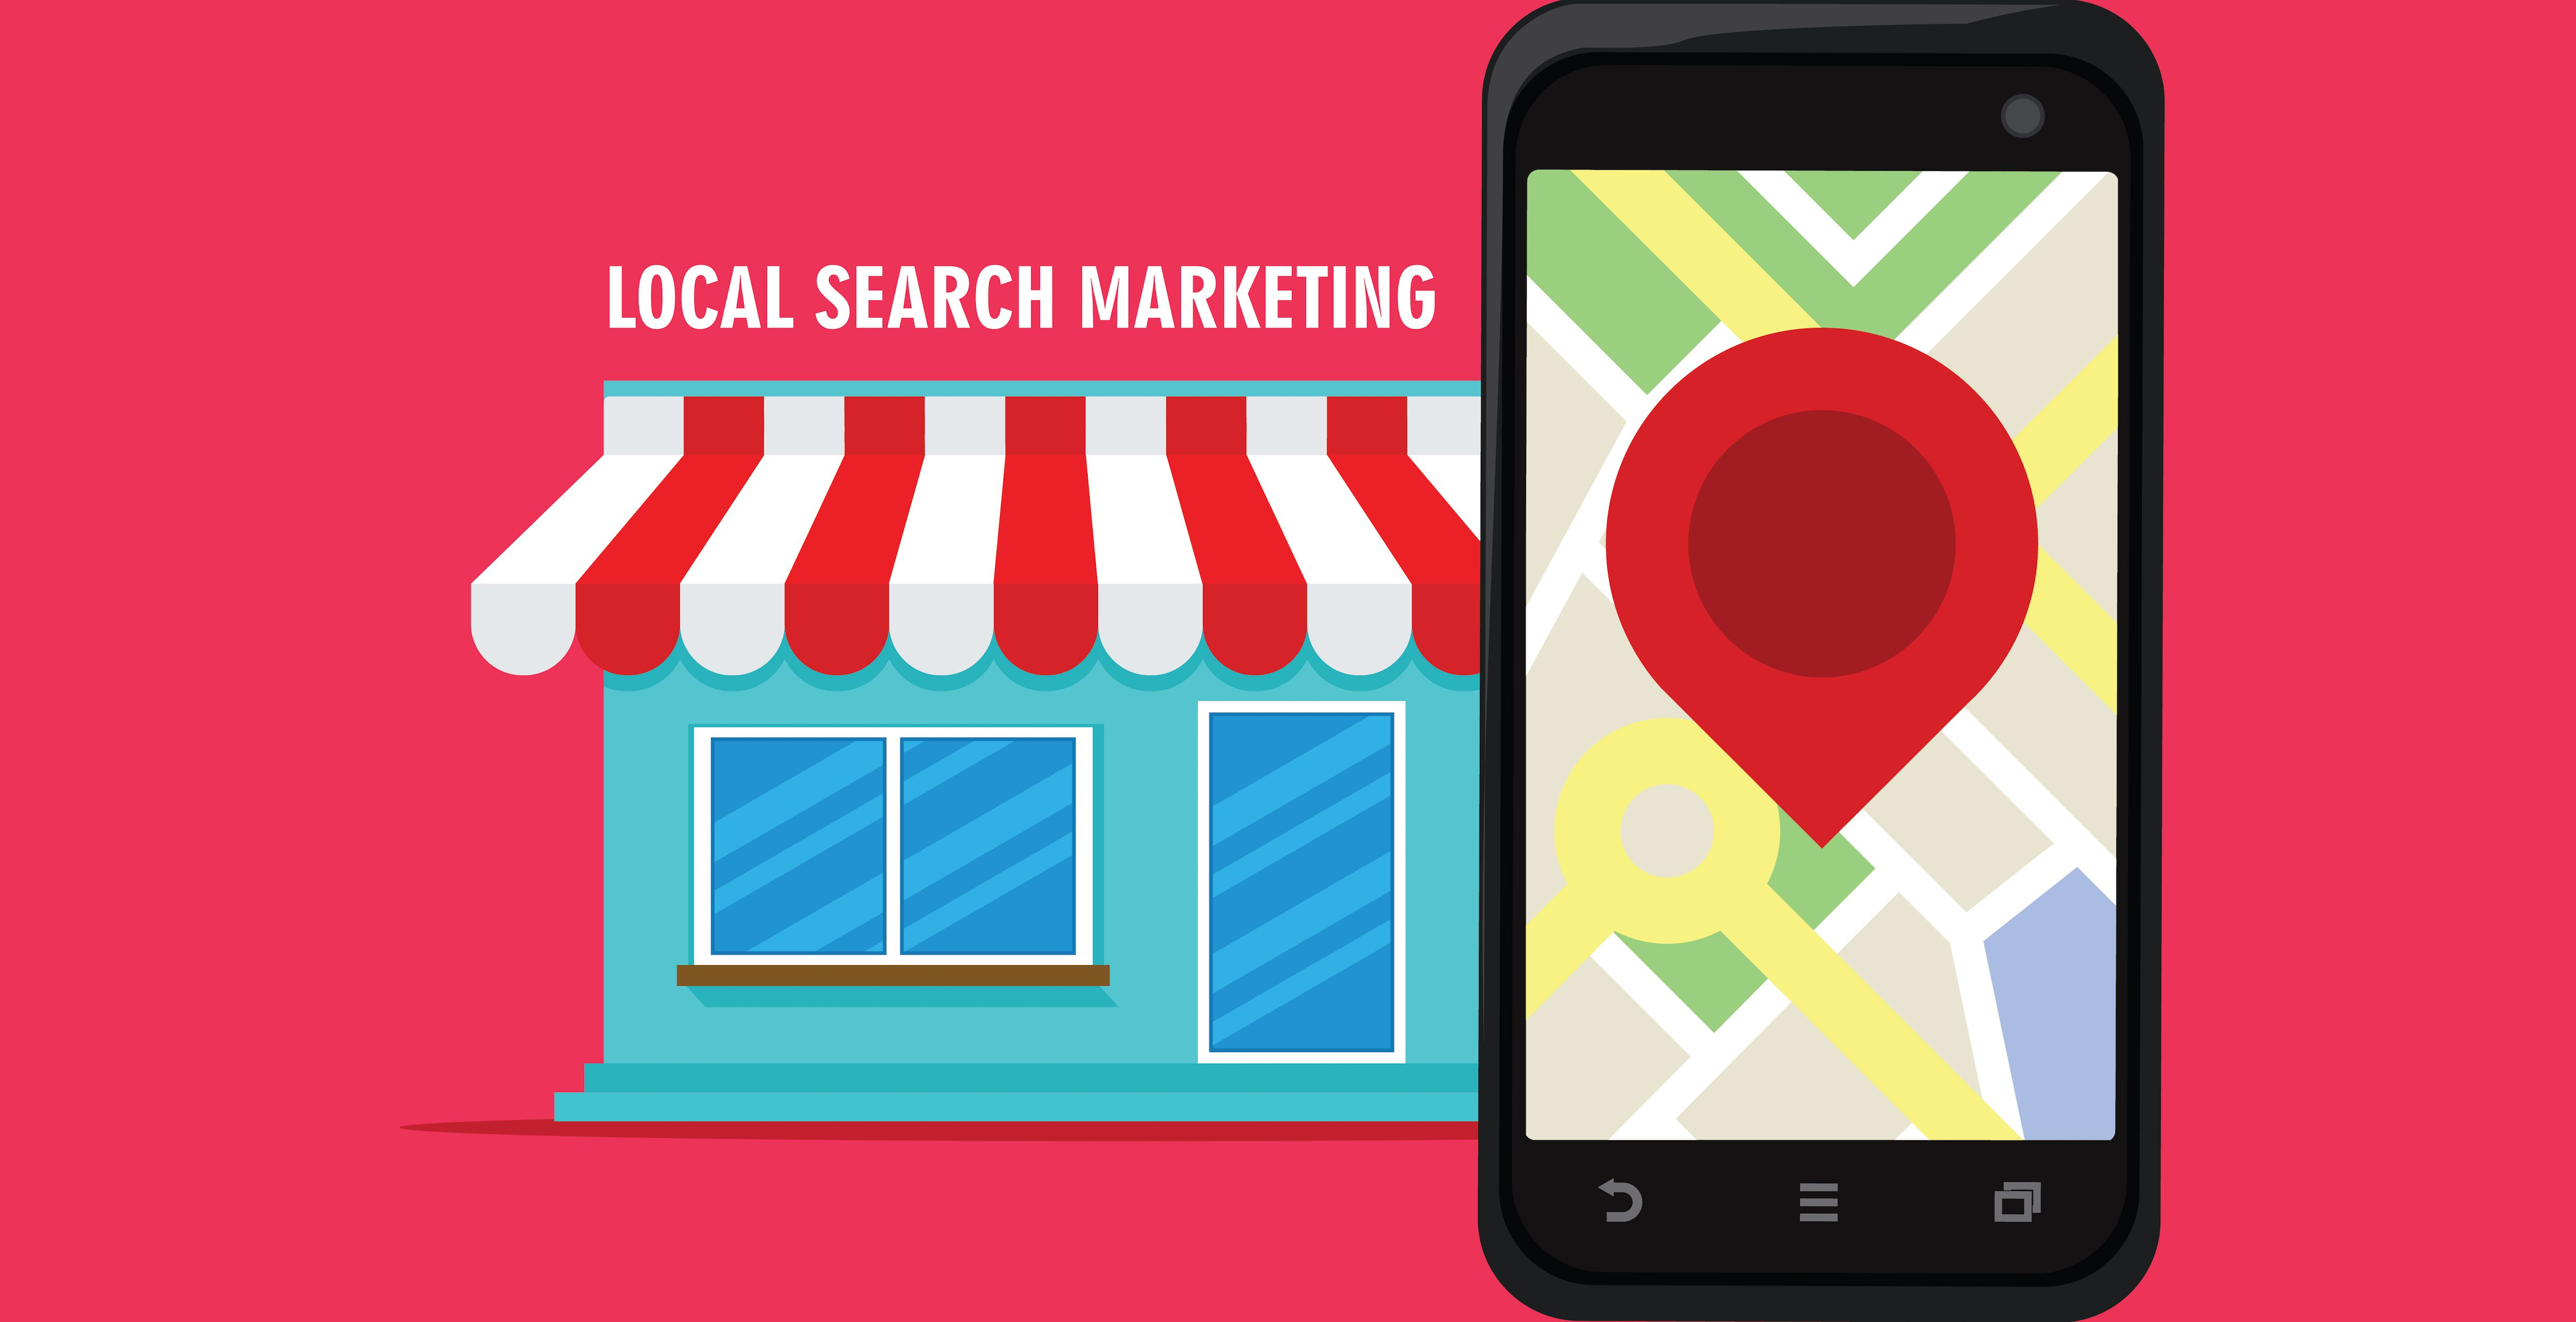 mobile phone showing map to local business. healthcare business optimized for local search marketing.